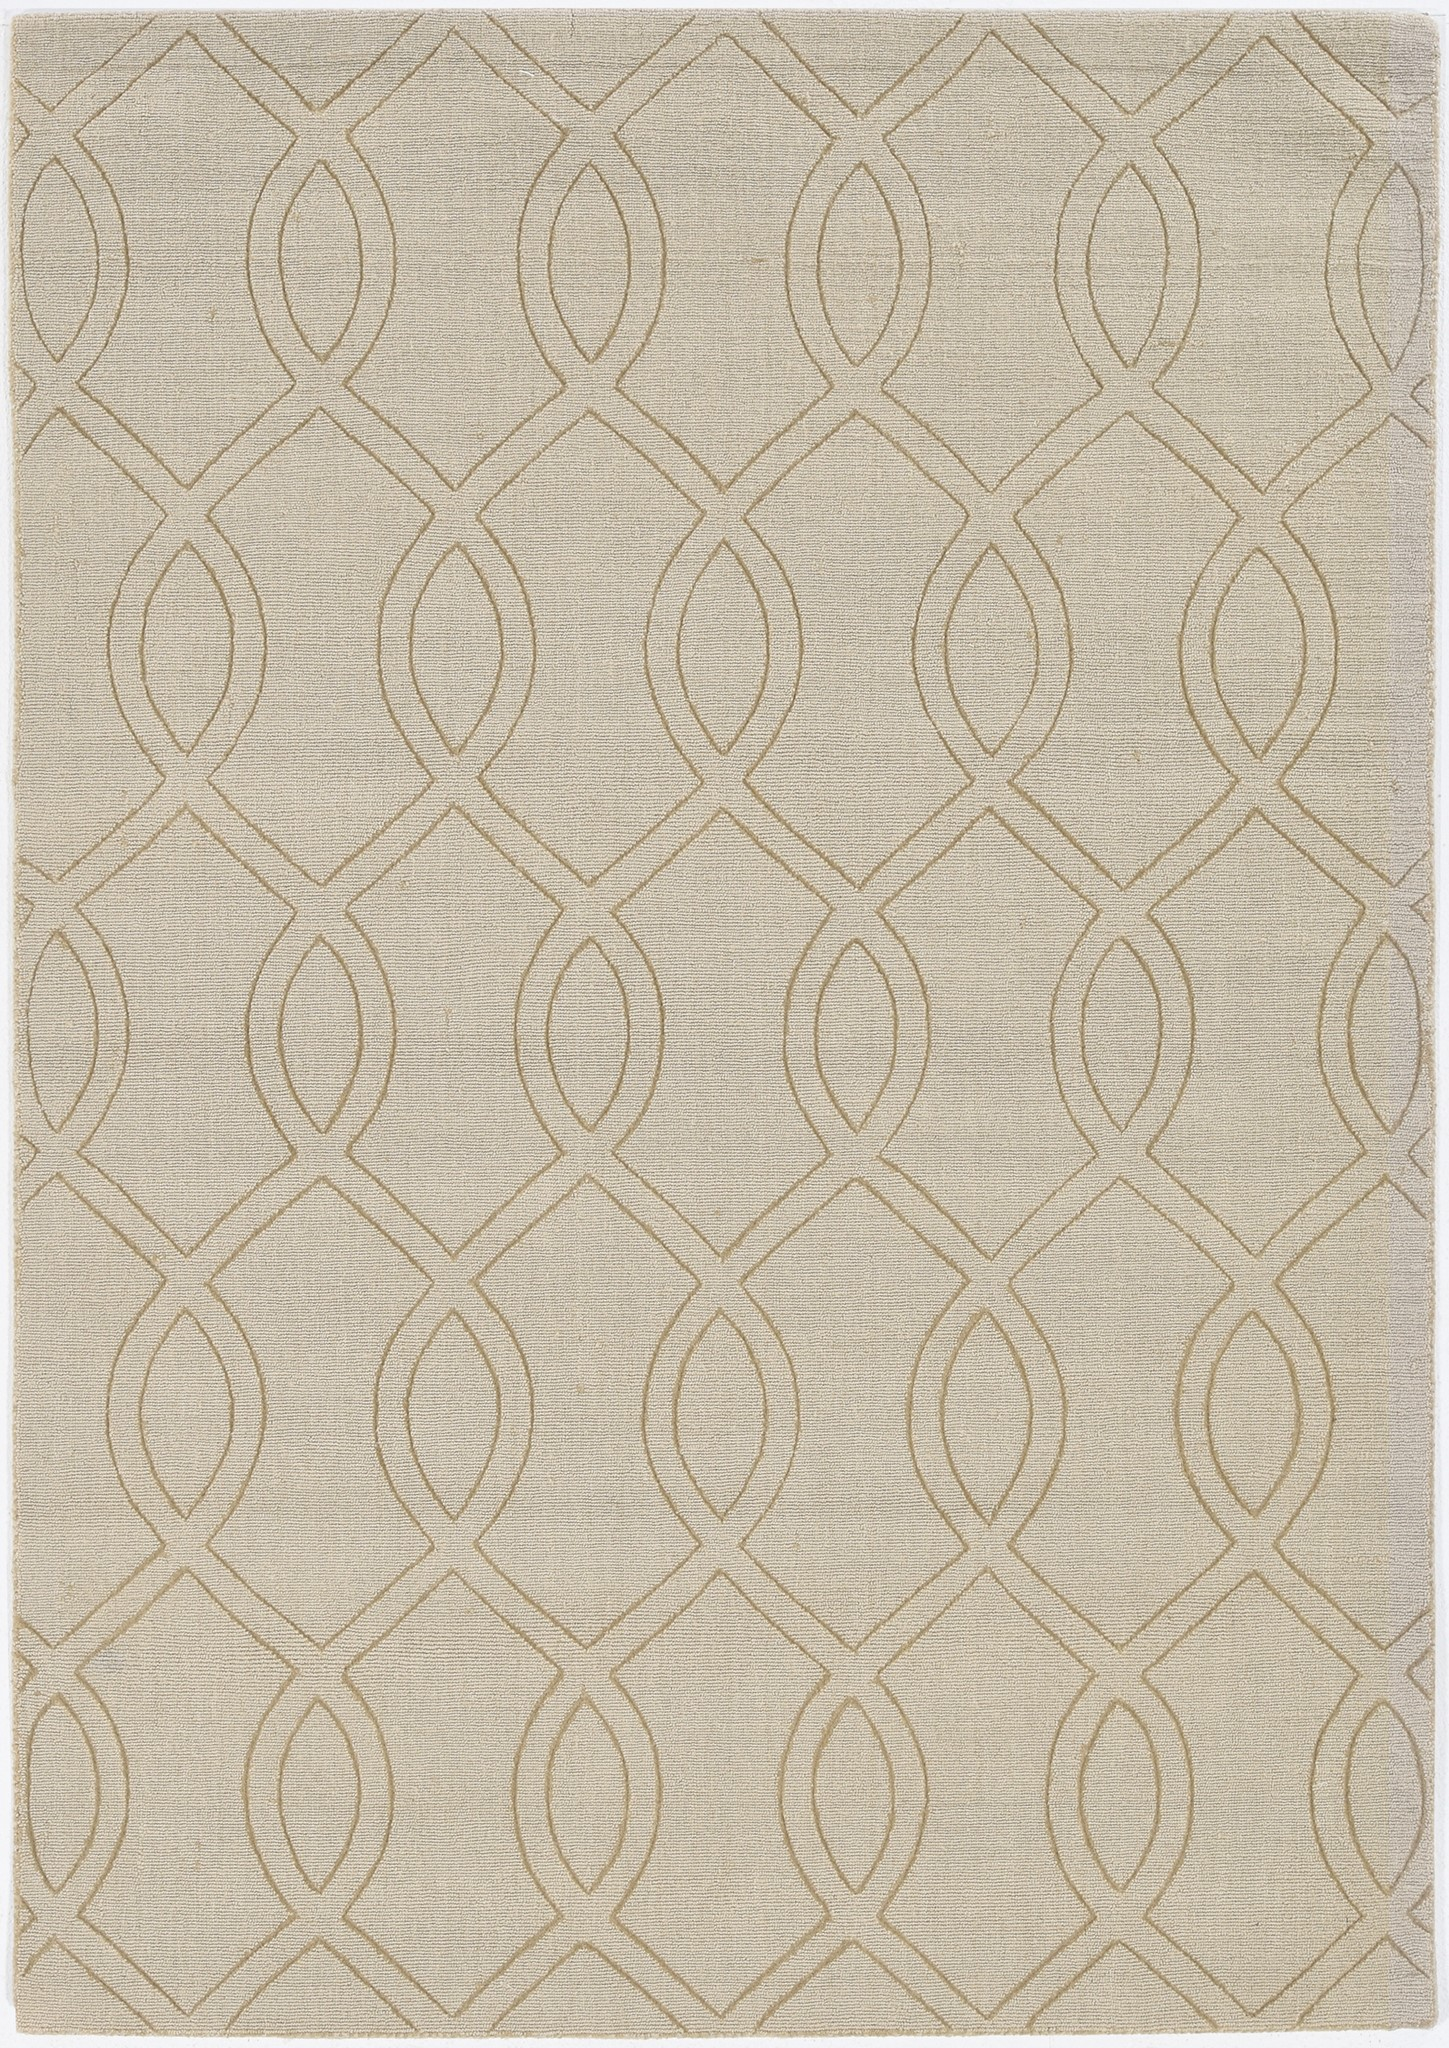 Avery 1452 Beige Ellison